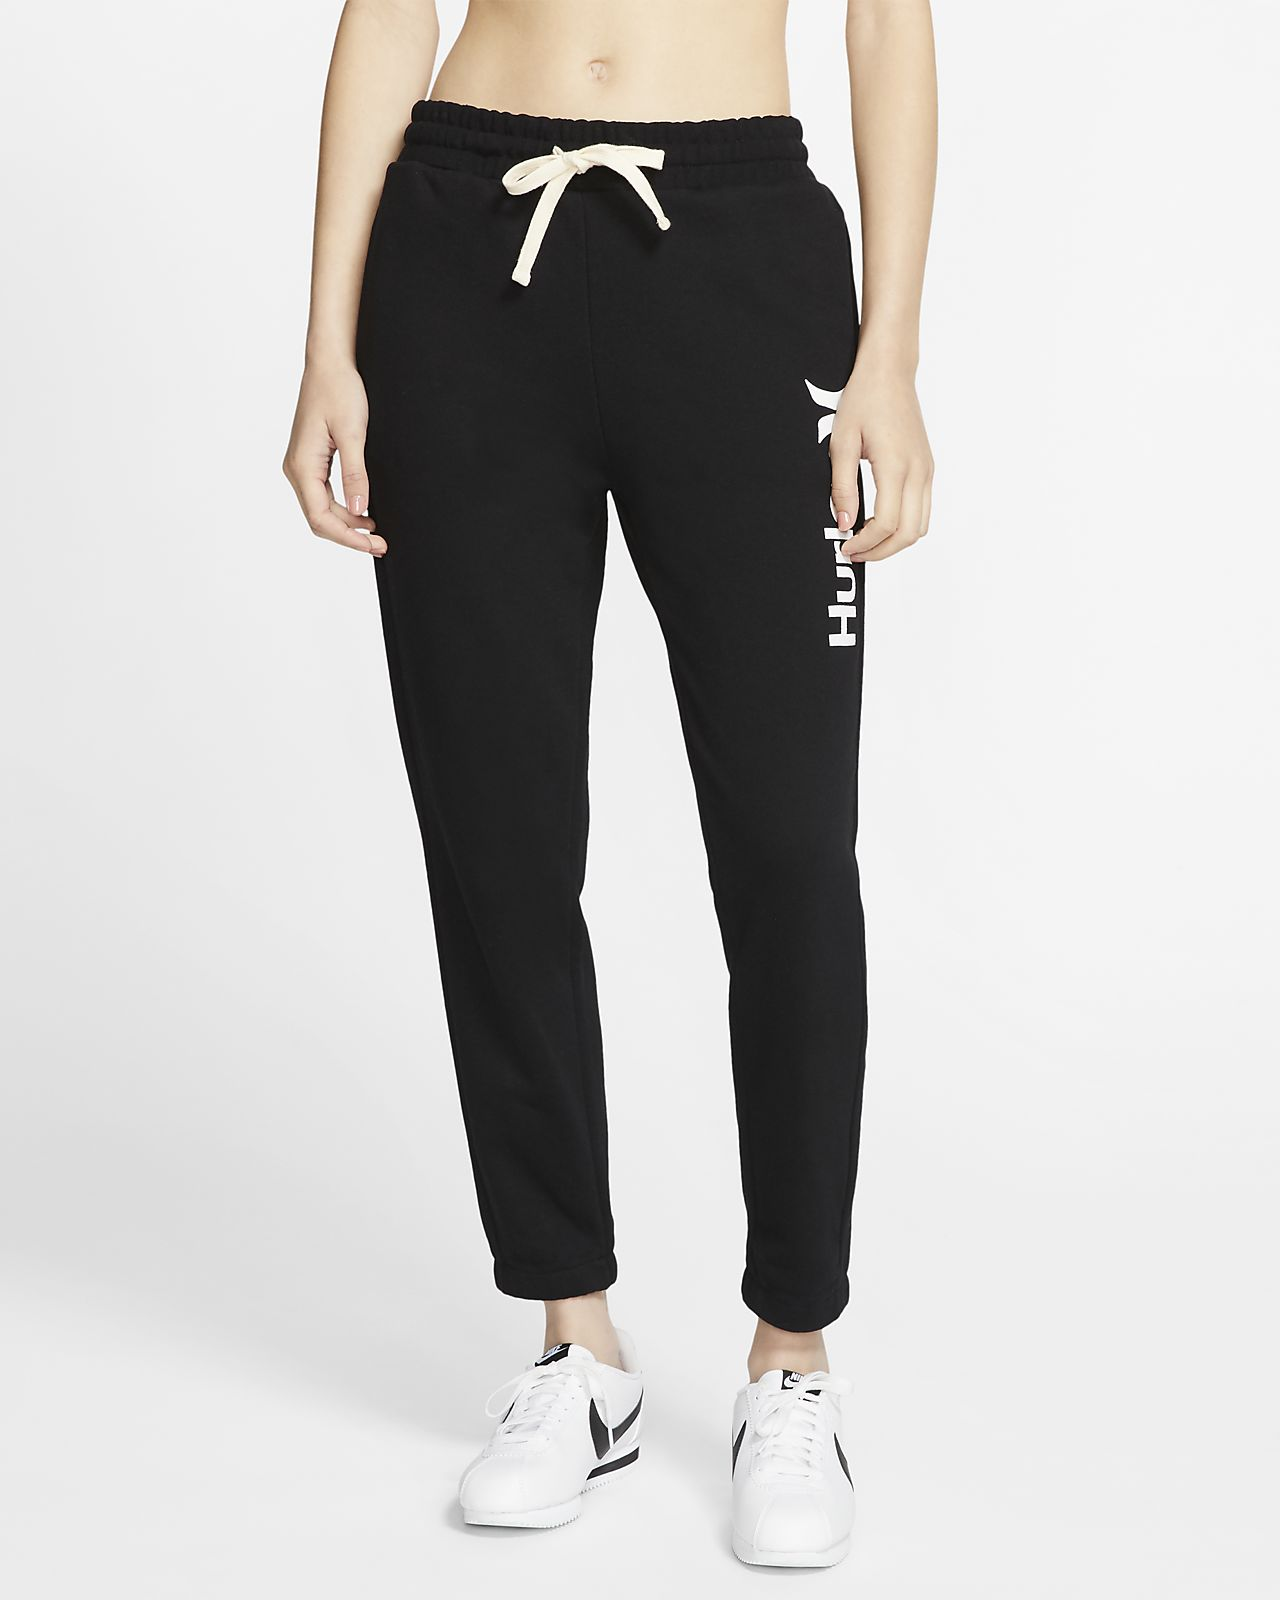 Pantalon de jogging en tissu Fleece Hurley One And Only pour Femme